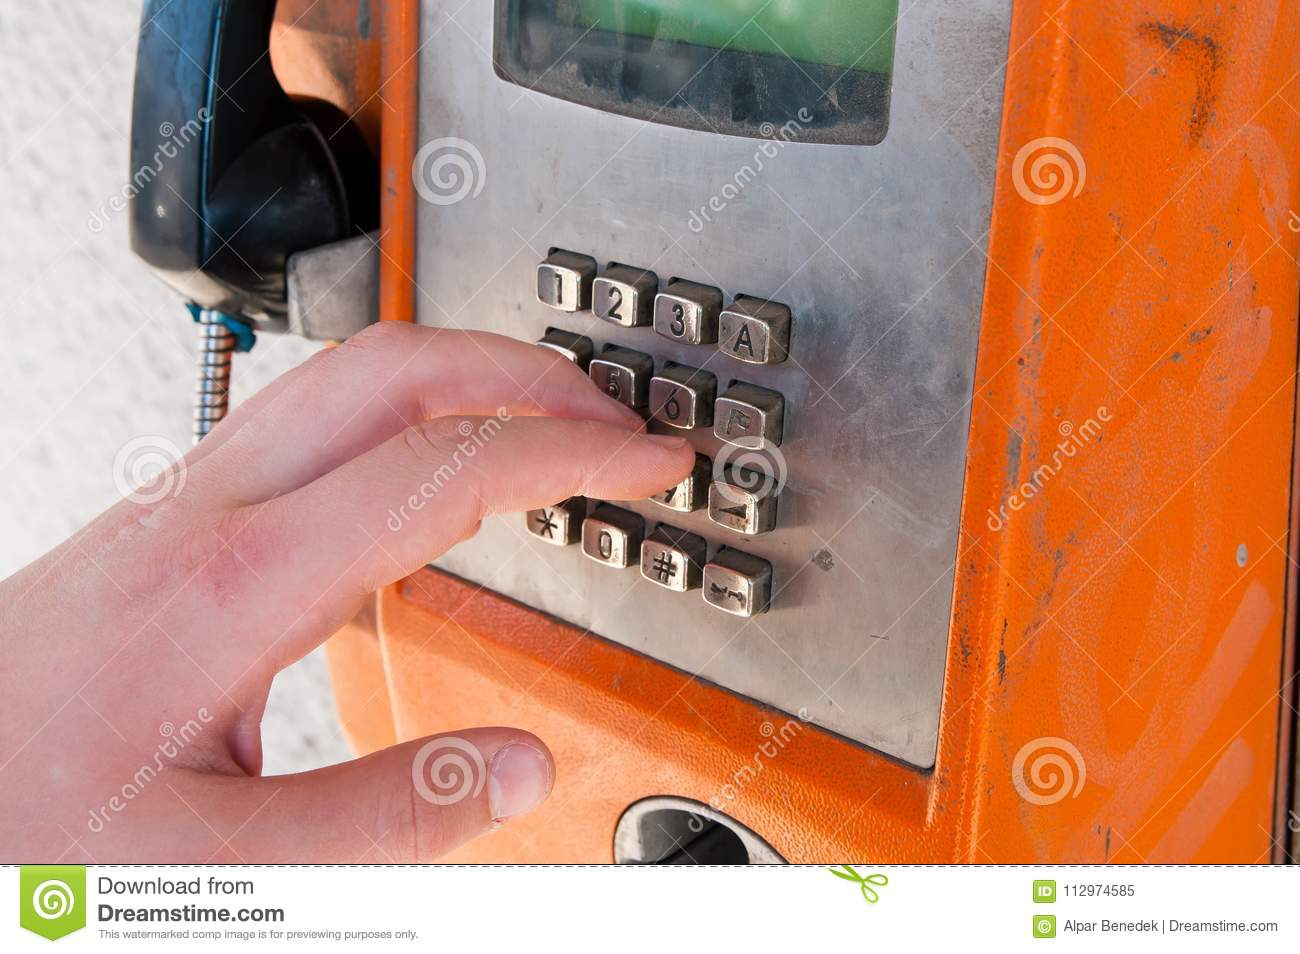 Young boy touching an old unused, unfunctional orange public phone